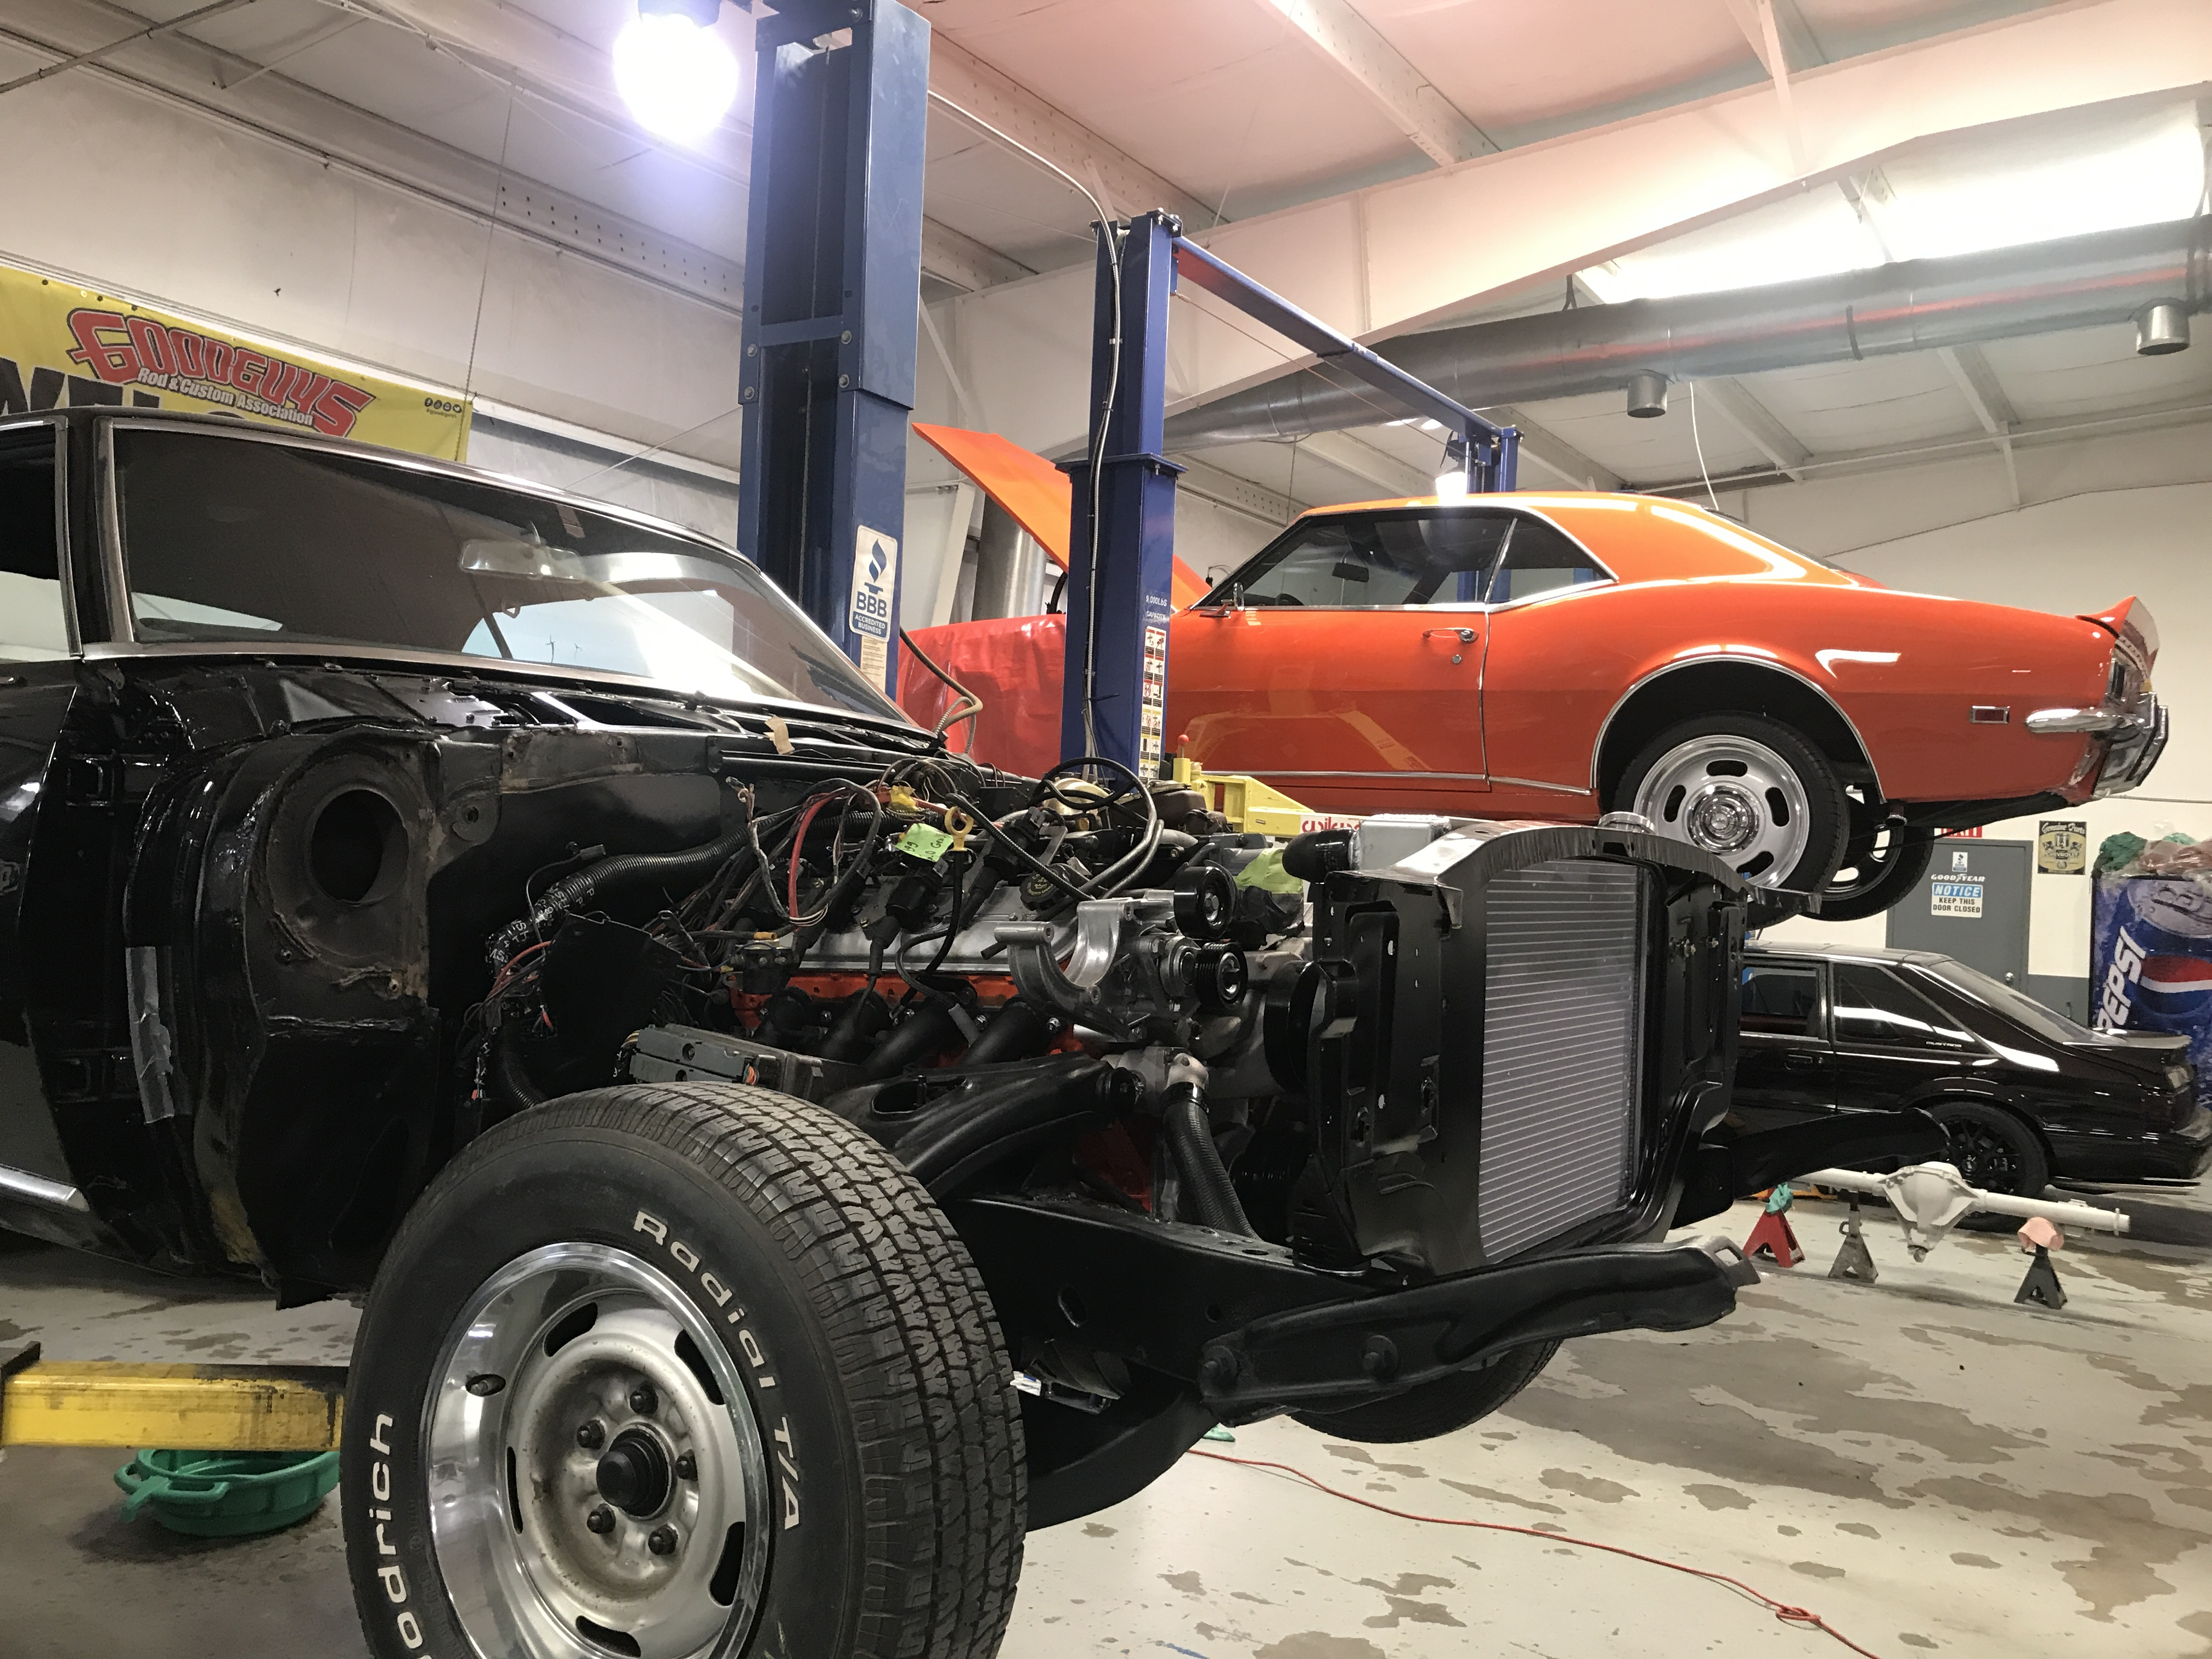 Restomod Shop in North Carolina